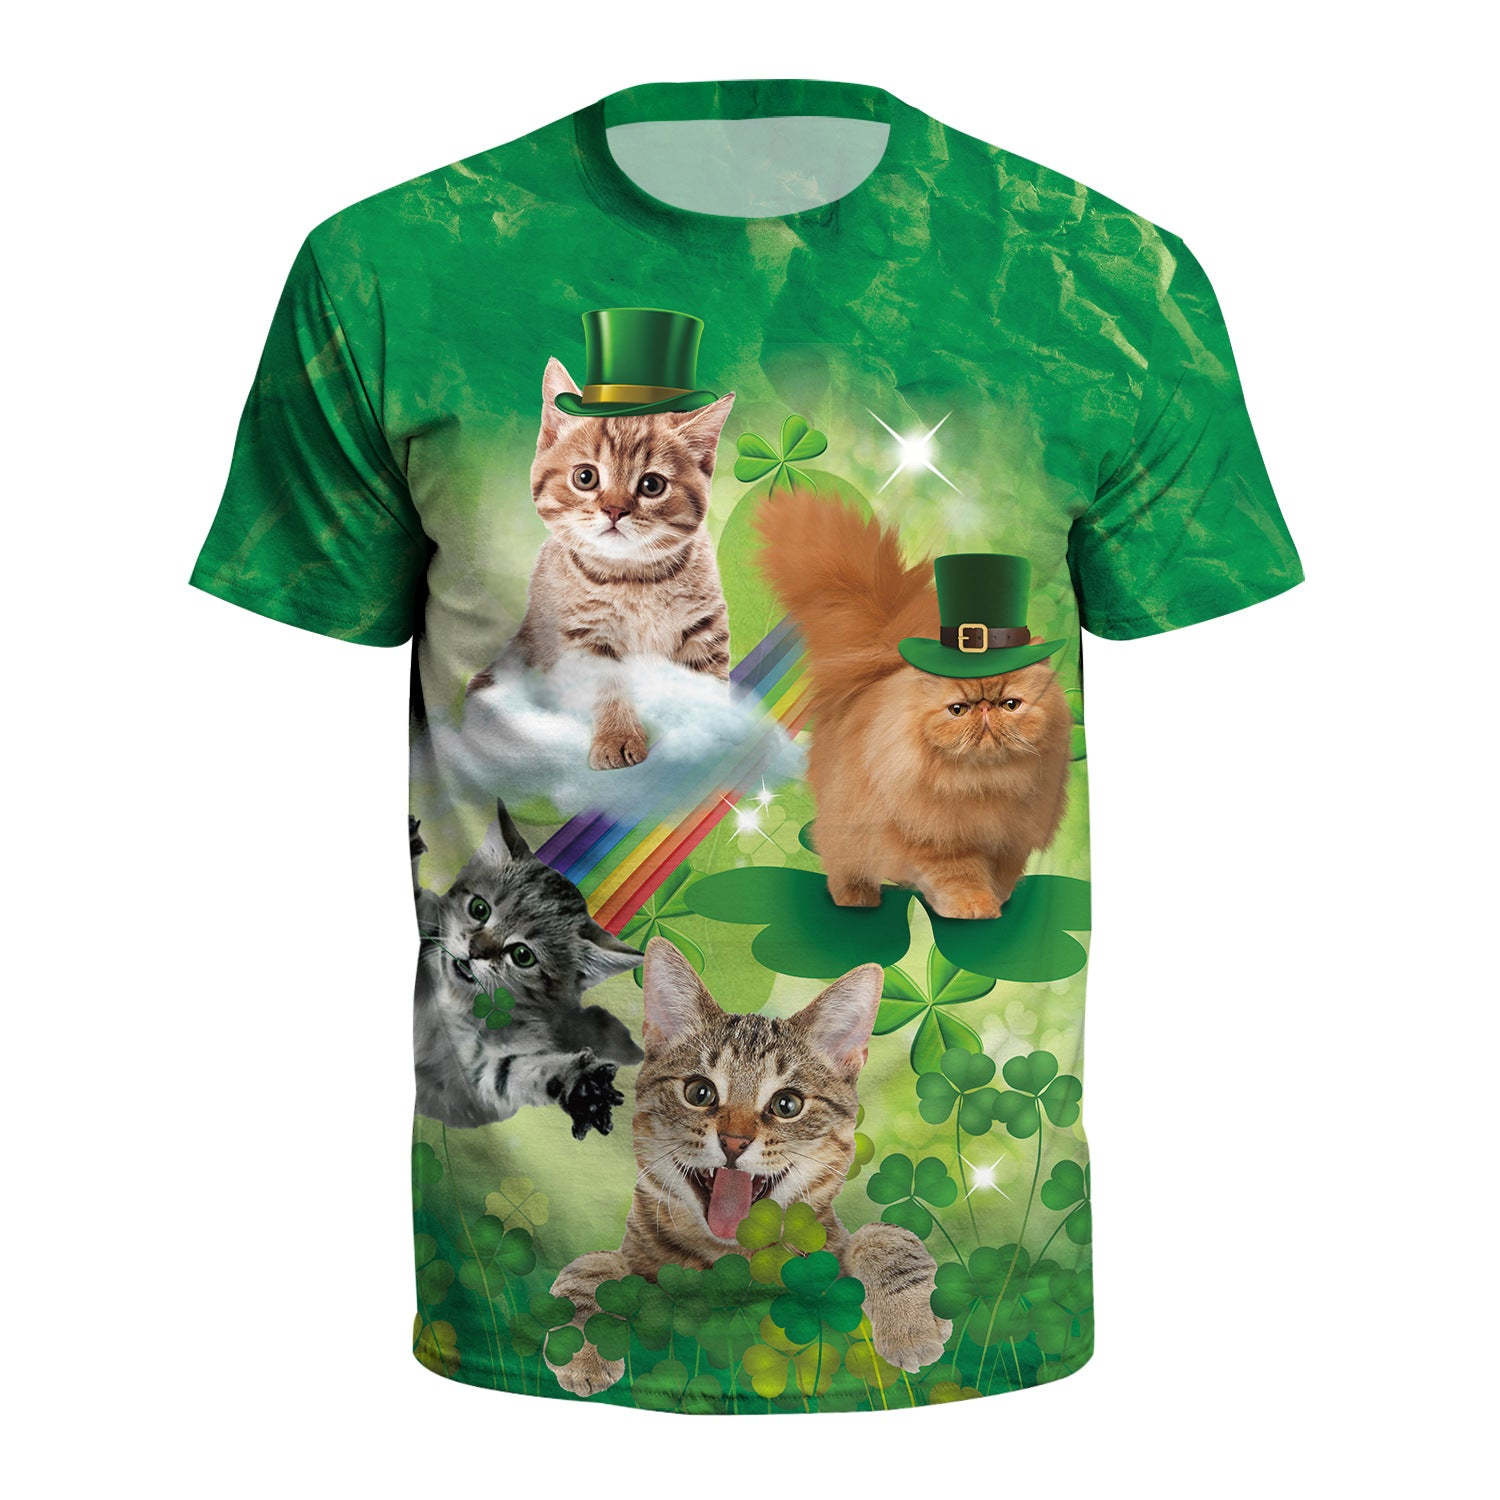 3D St. Patrick's Day Cute Cat Print Shamrock Green T-shirt  Tee Tops